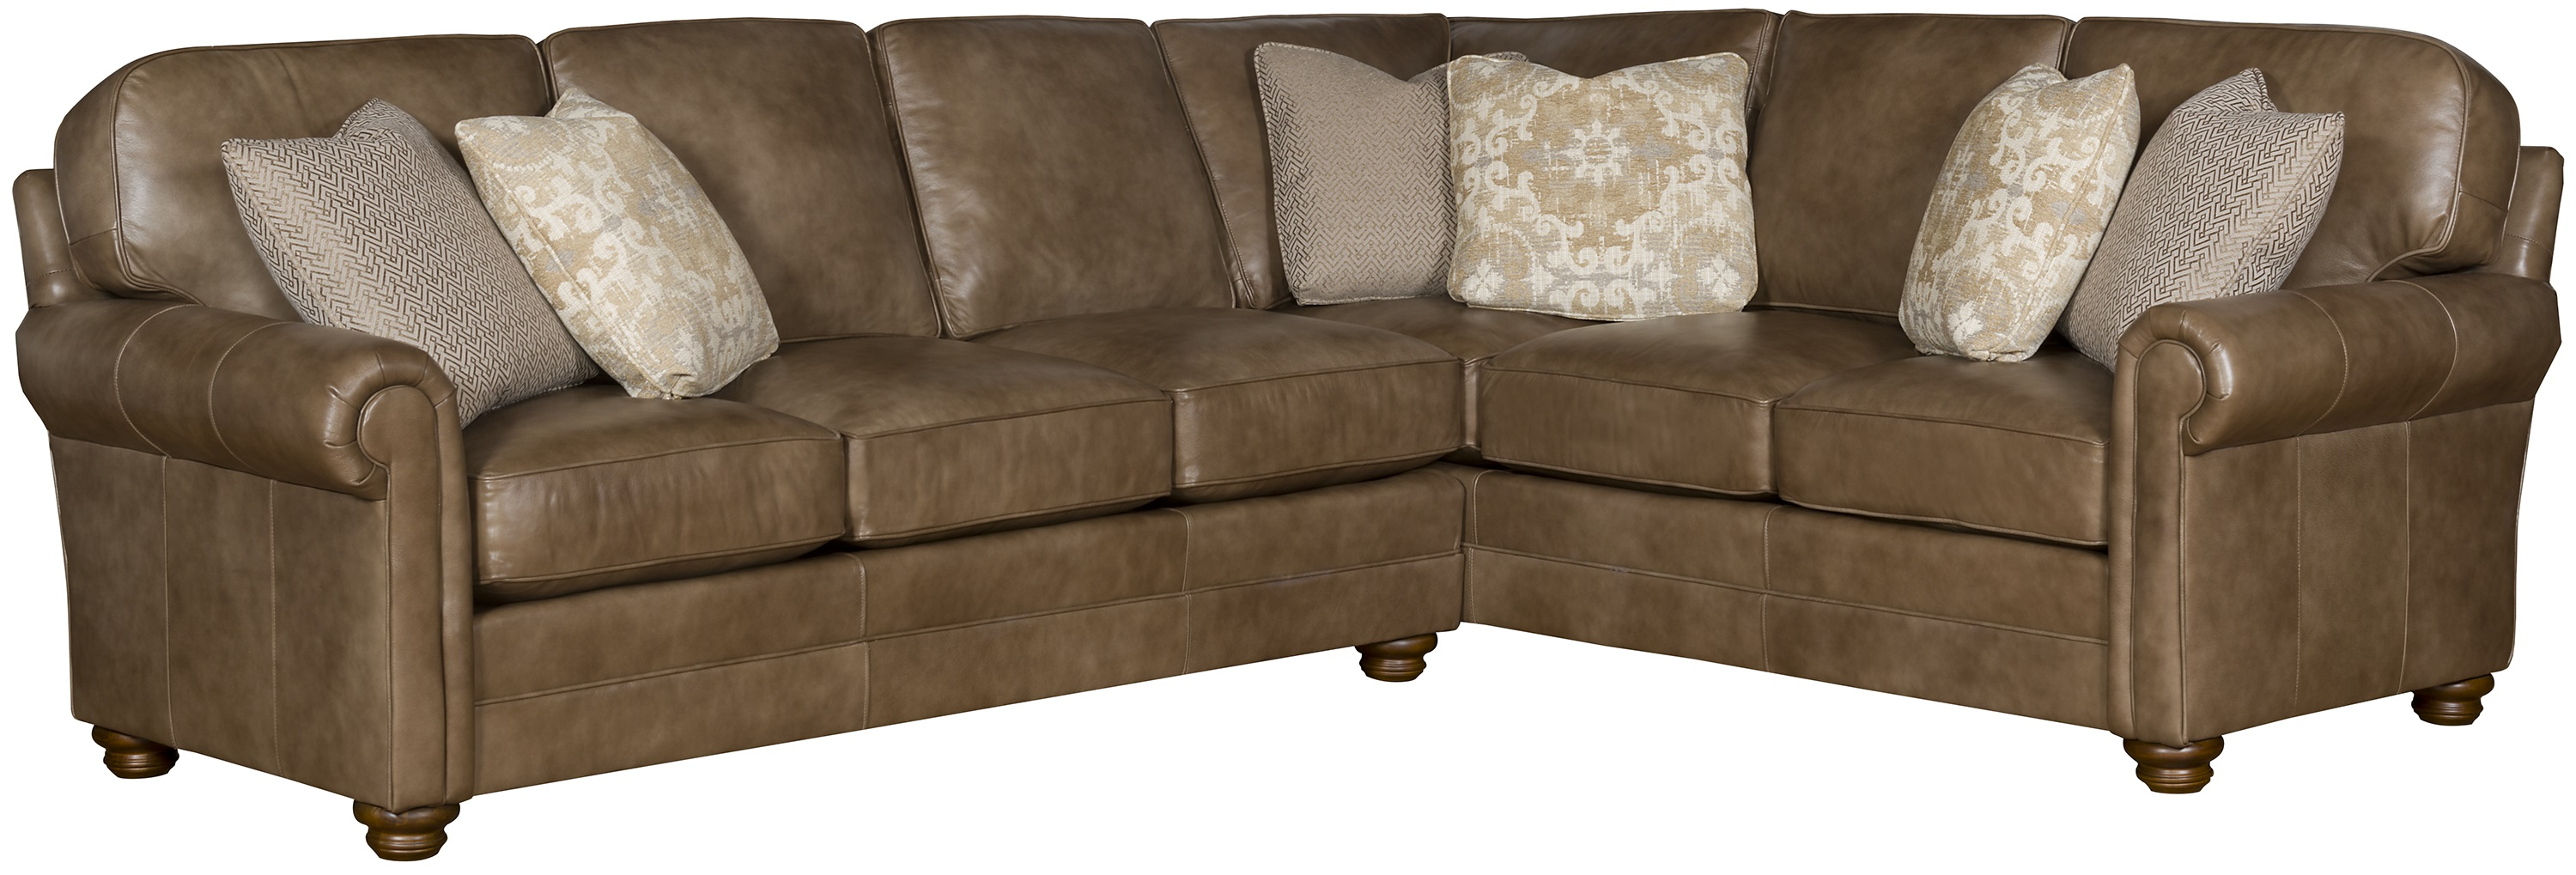 Tuscan Sectional